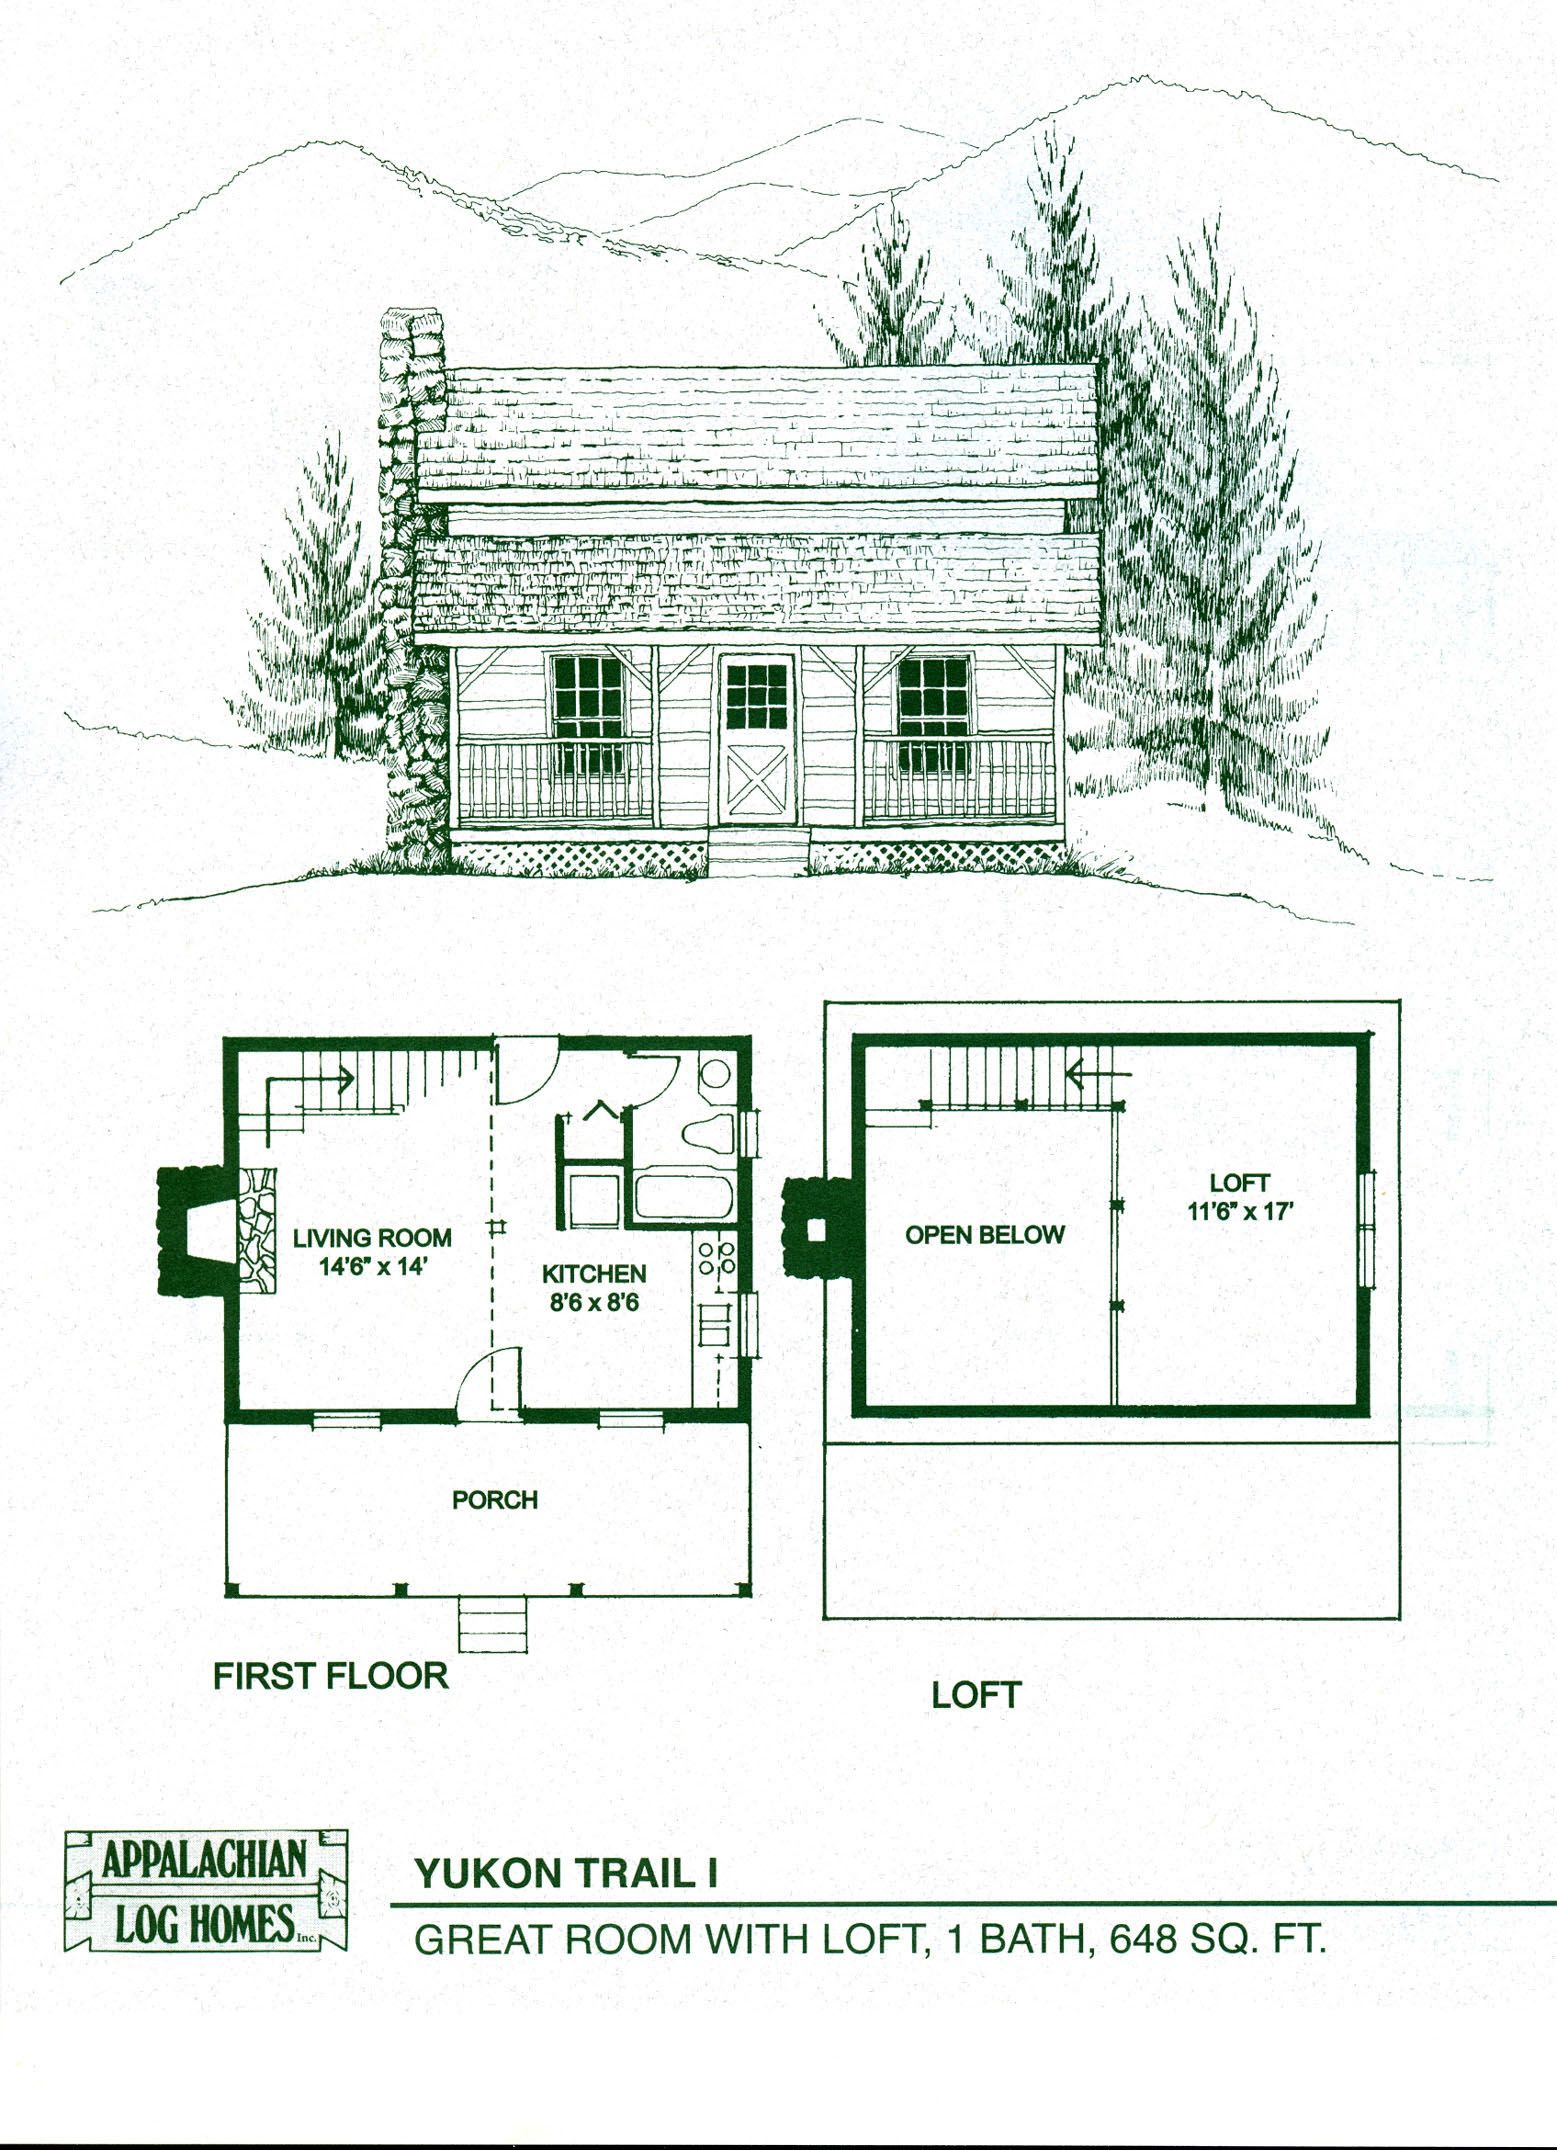 Phenomenal Log Home Floor Plans Log Cabin Kits Appalachian Log Homes Largest Home Design Picture Inspirations Pitcheantrous